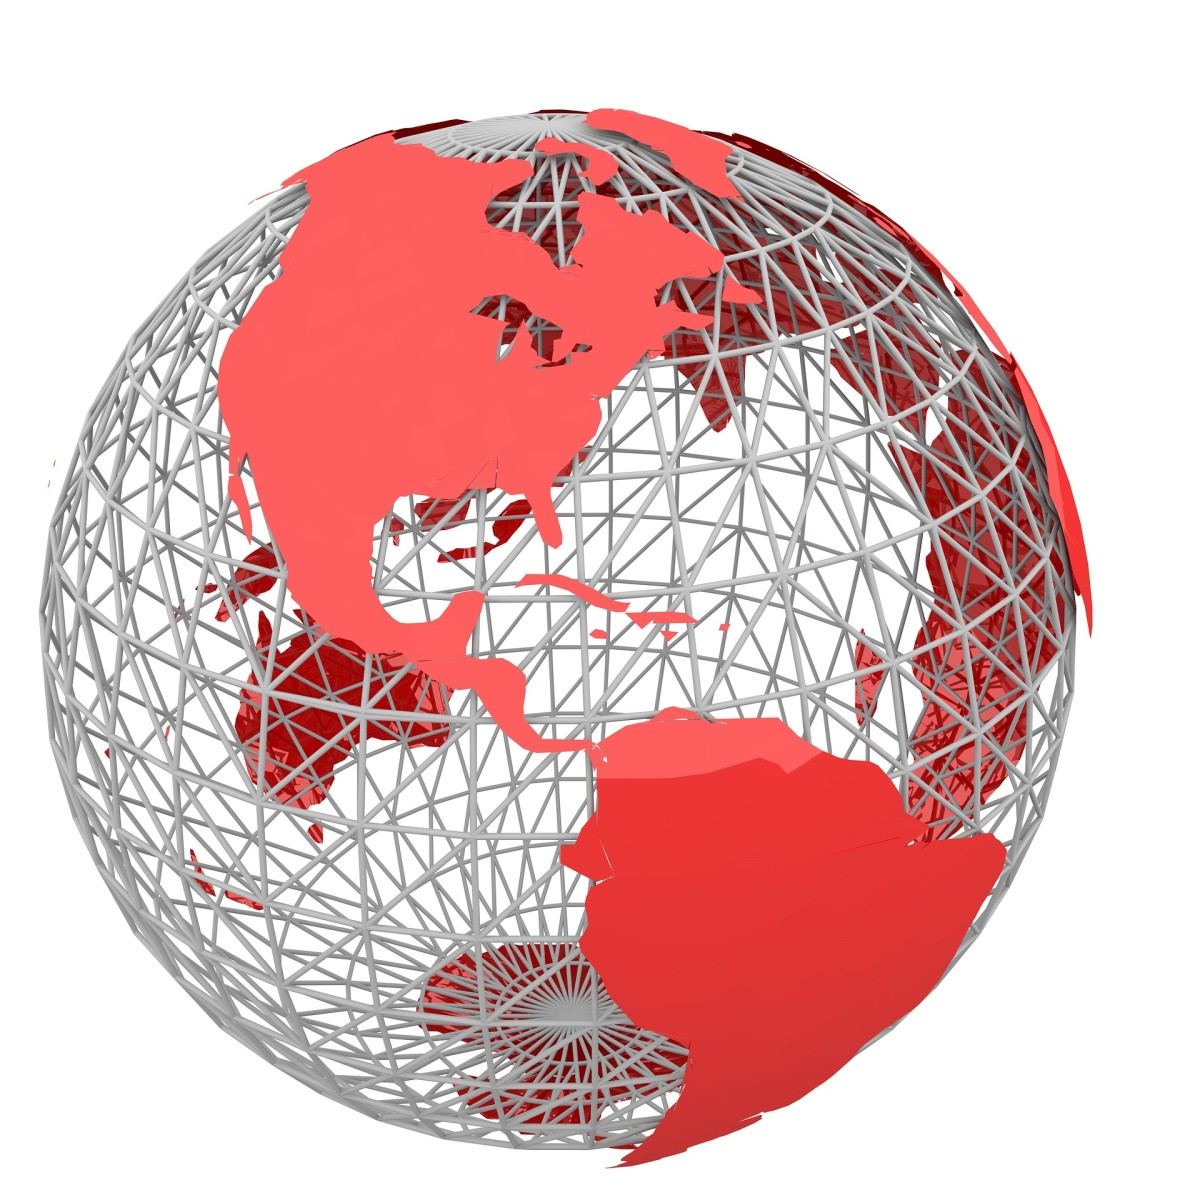 Almost everything in the world can be better represented and described using location based information.